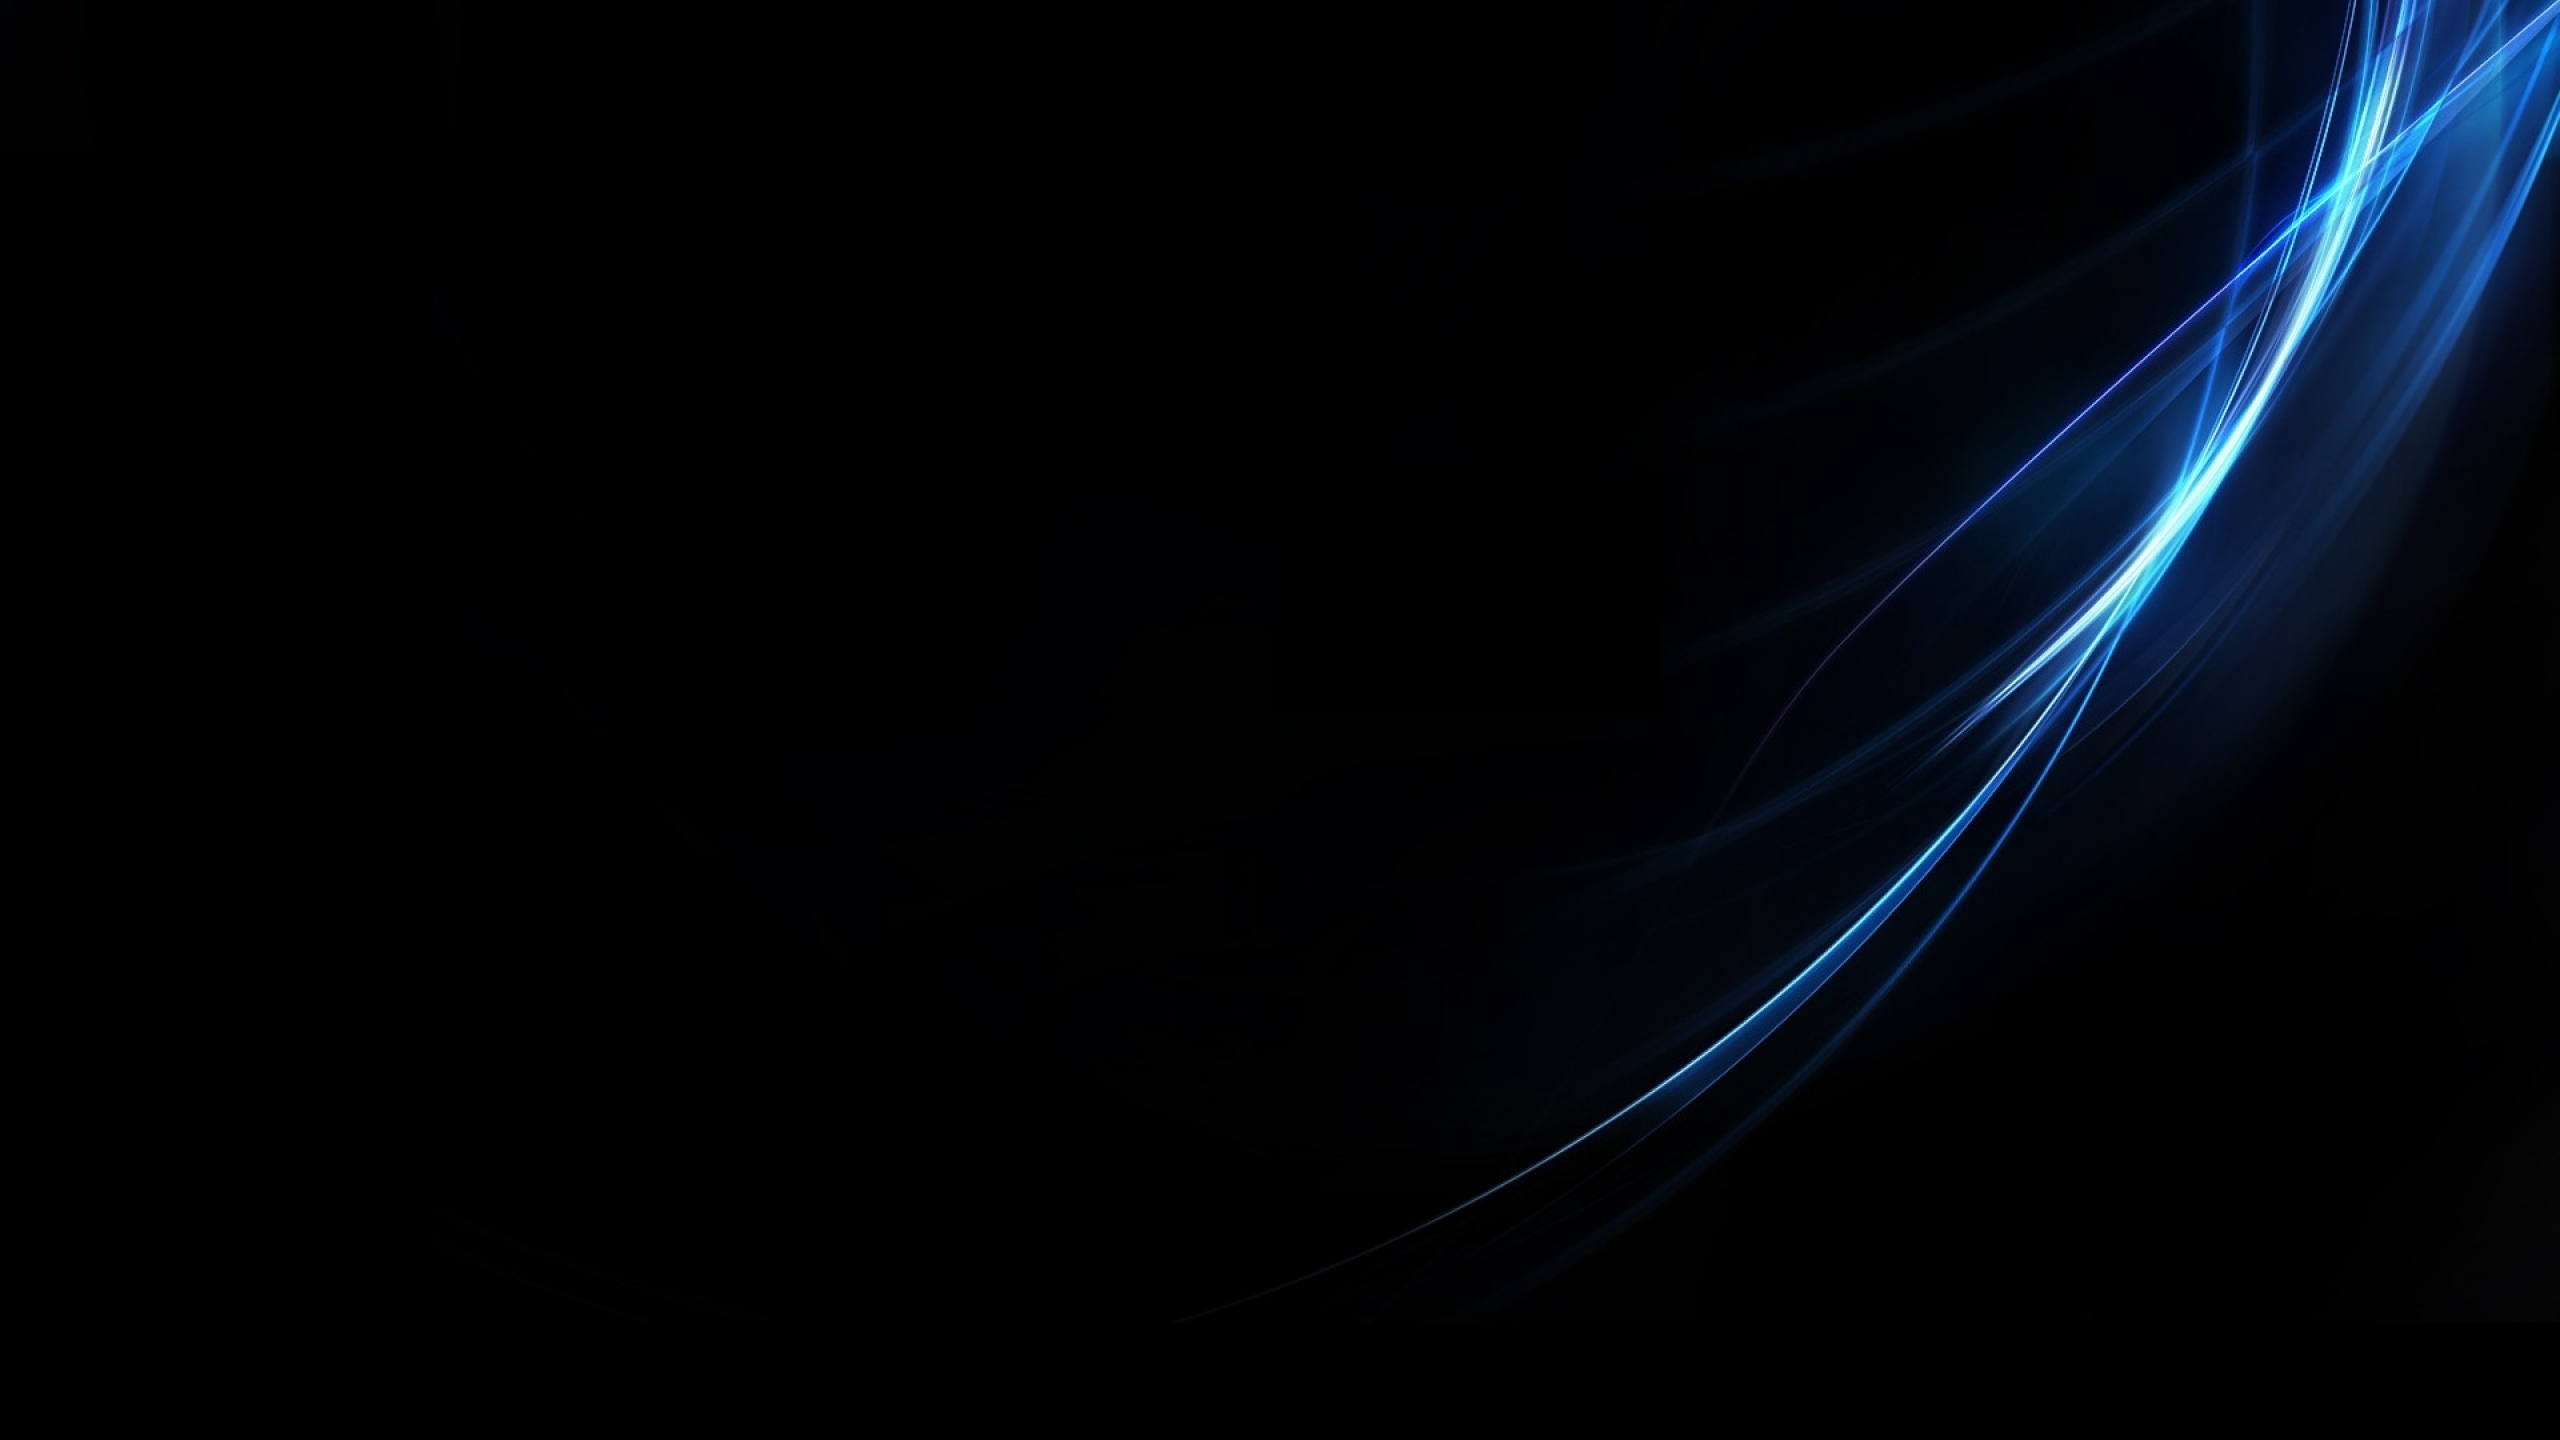 Windows 10 Dark Wallpaper - WallpaperSafari